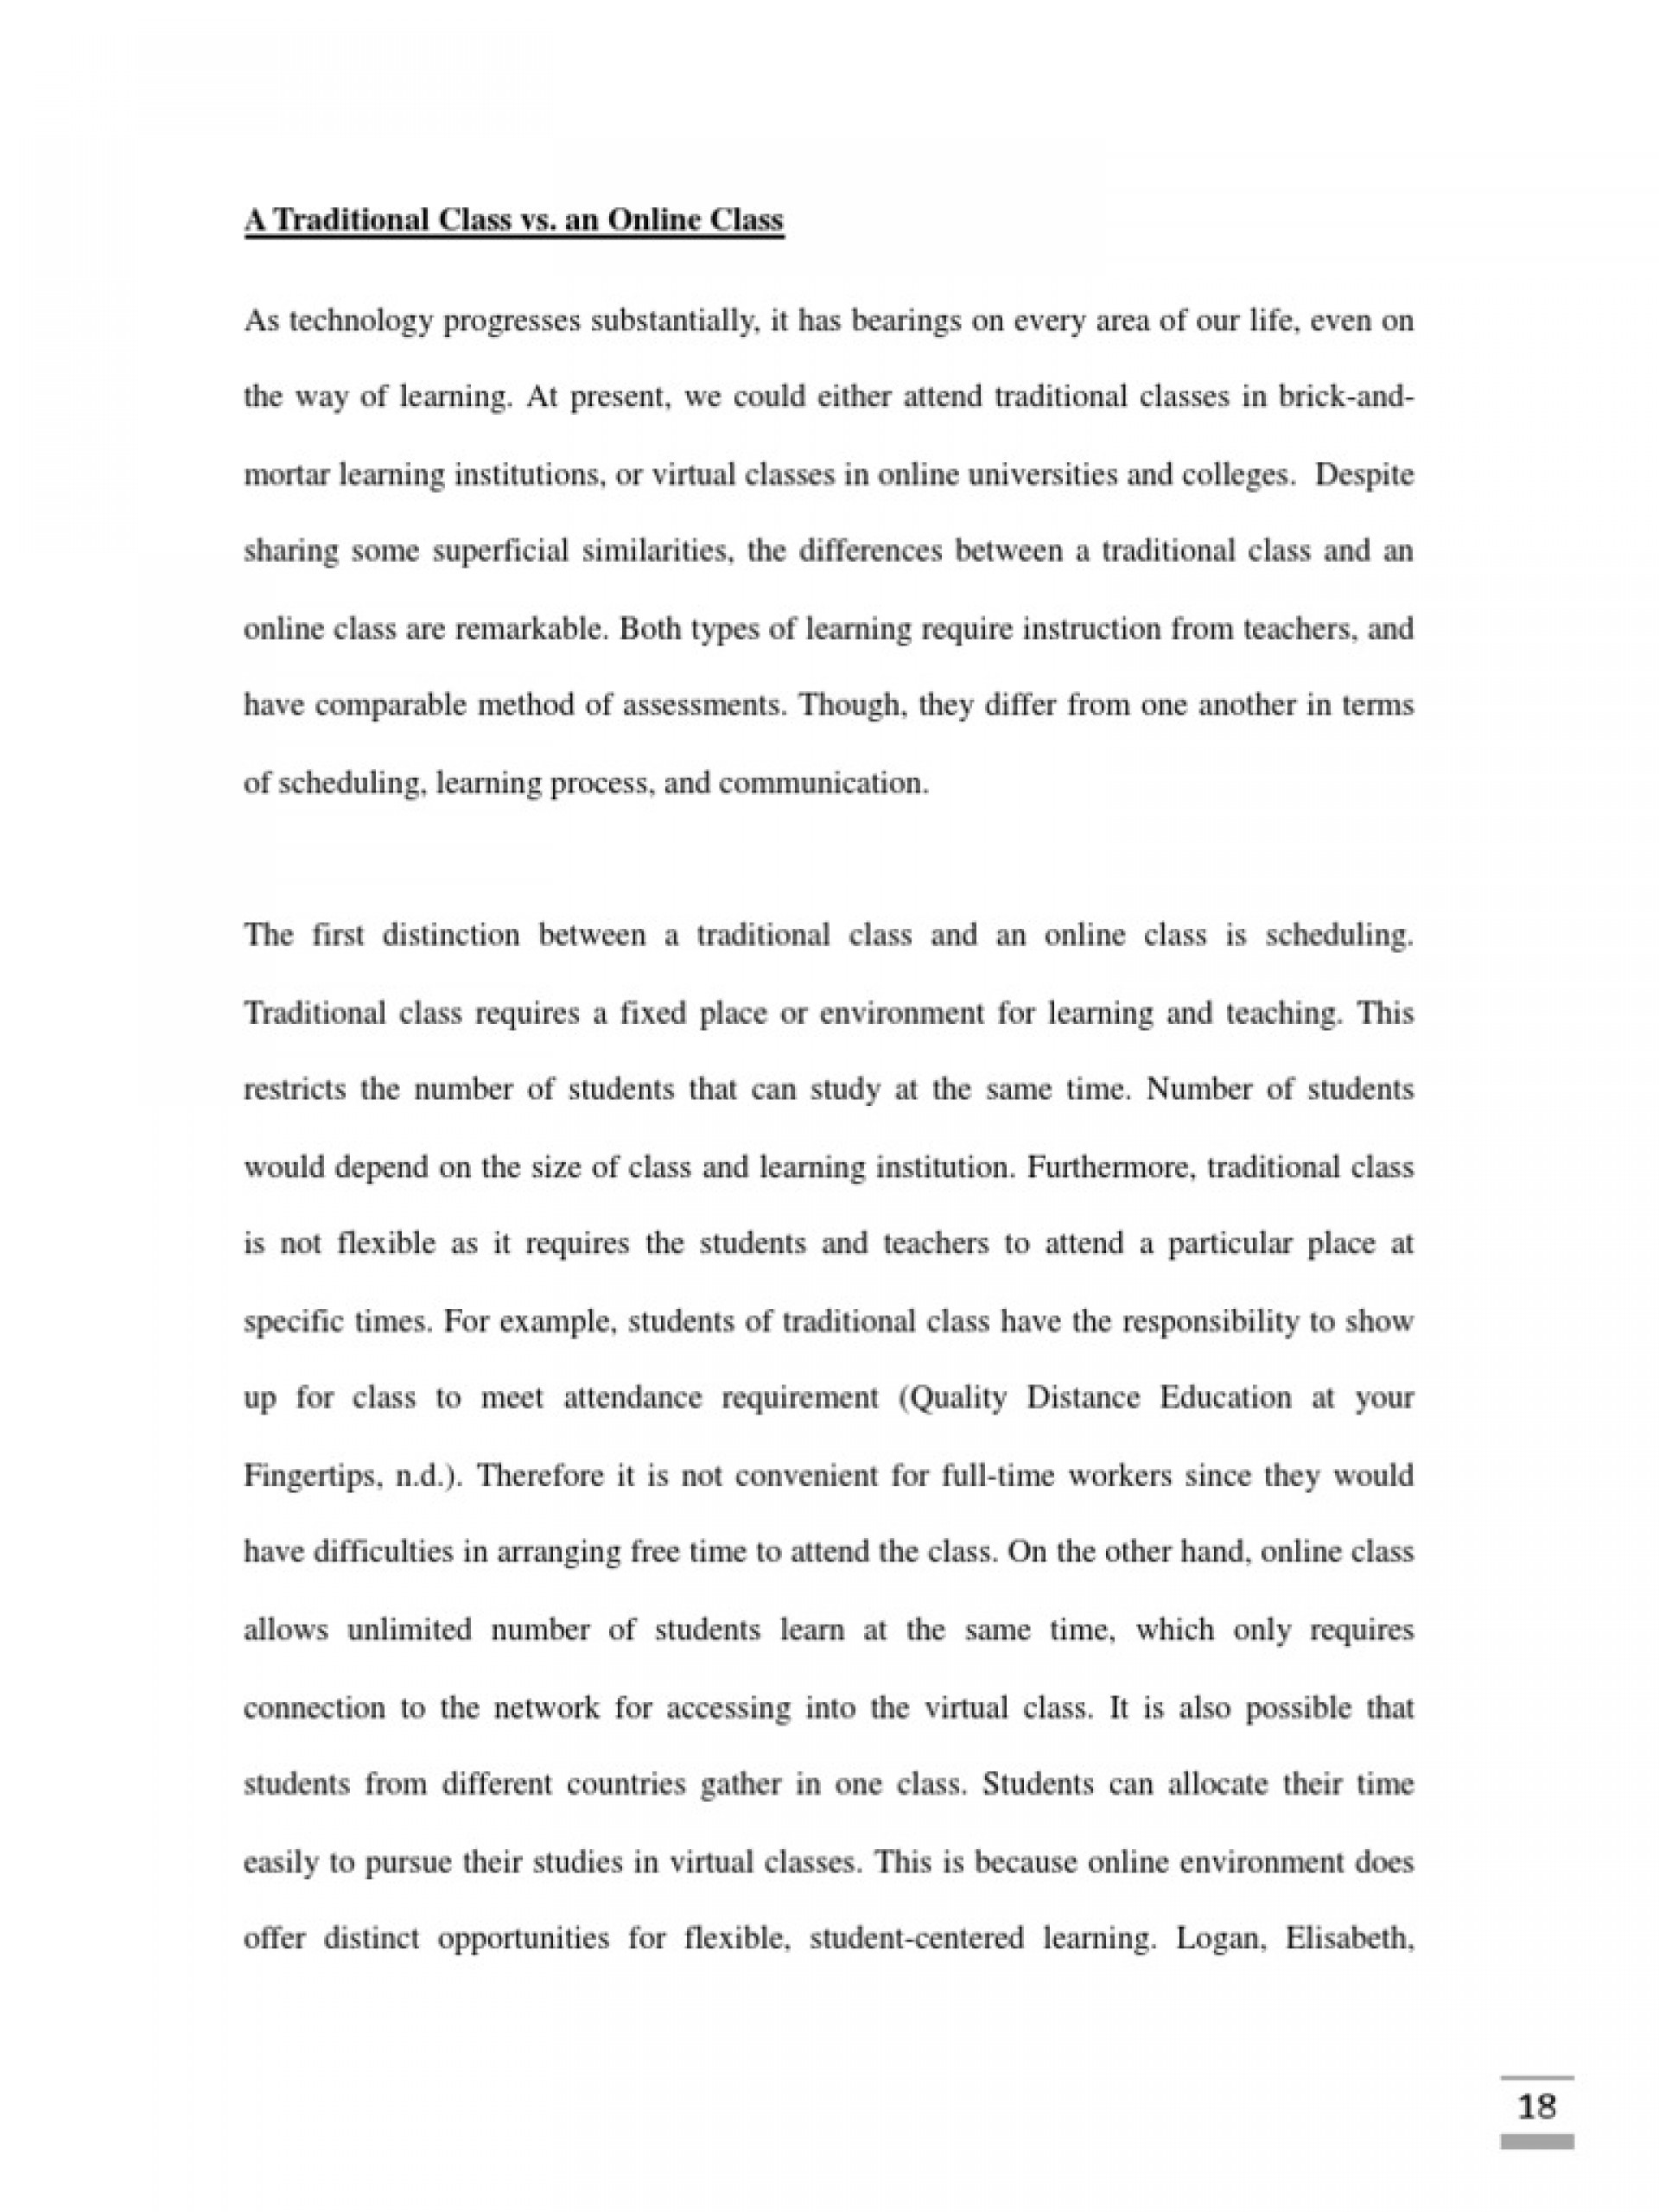 017 4107641886 Marriage Versus Living Together Comparison Contrast Essay Example Awful And Examples Point-by-point 1920